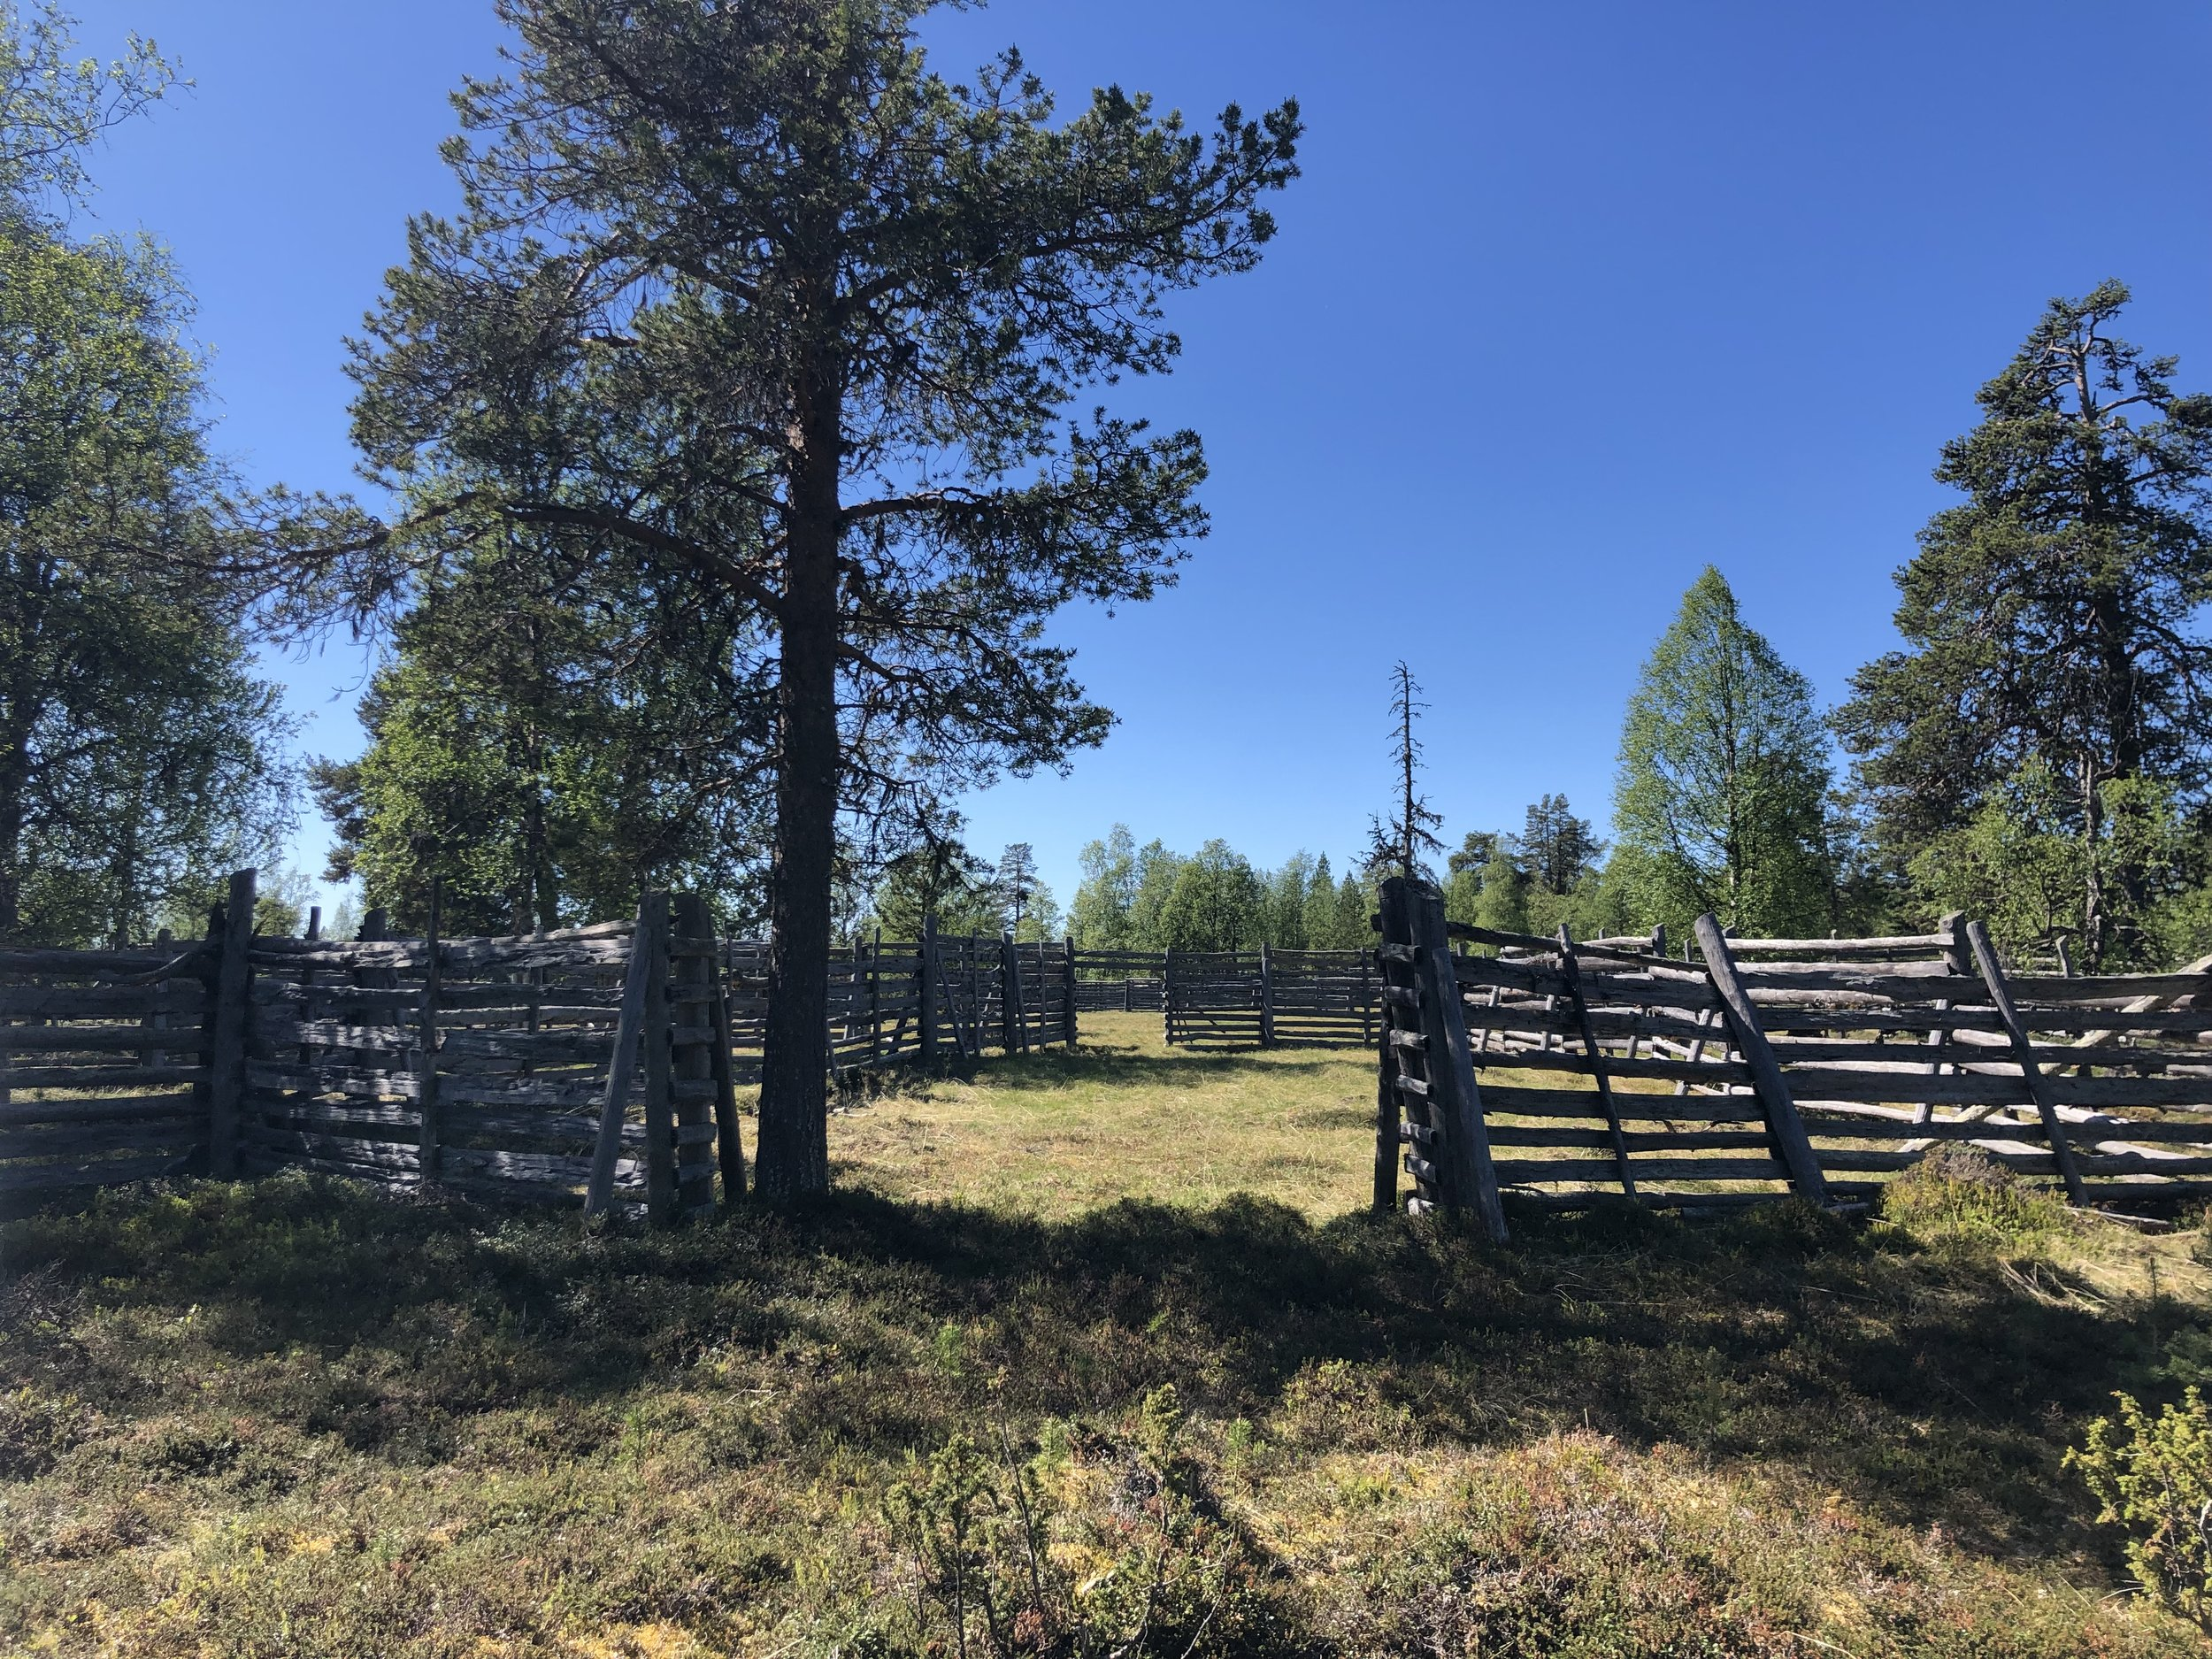 Sami (name of the native peoples in this part of Finland) built these corrals in the middle of the forest for their annual reindeer roundup.